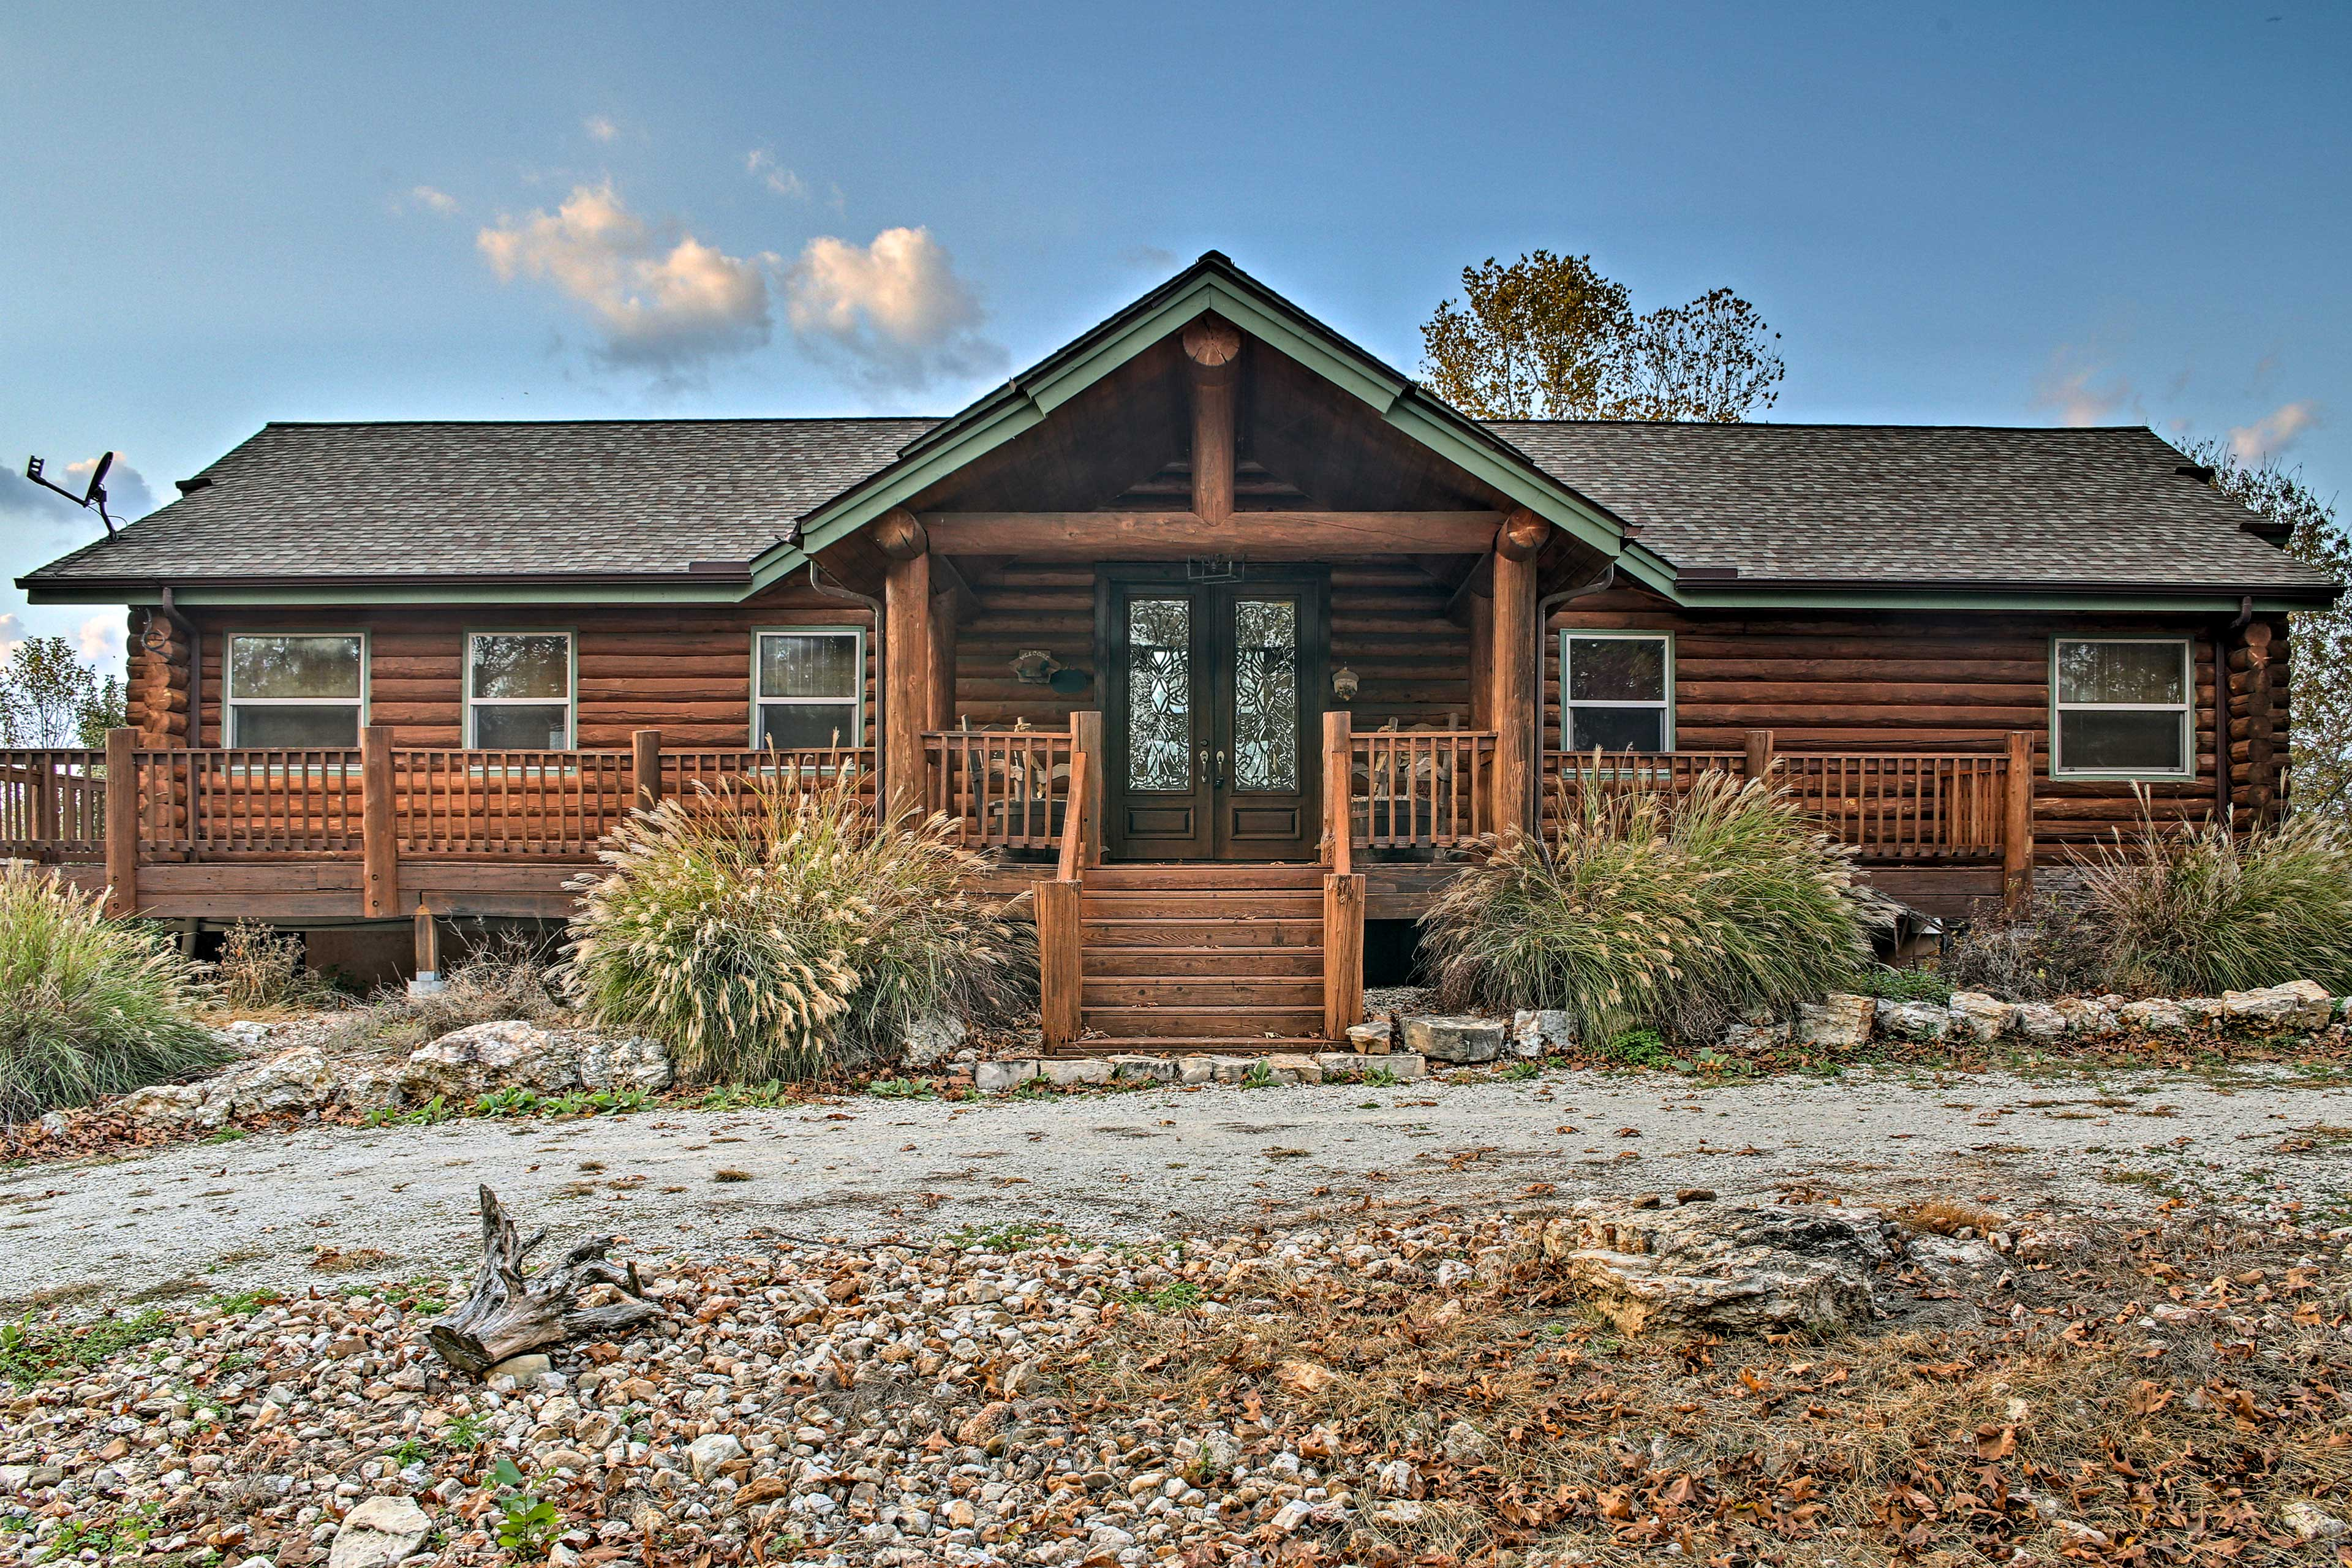 Get away to Table Rock Lake at this 4BR, 2.5-bath vacation rental cabin.